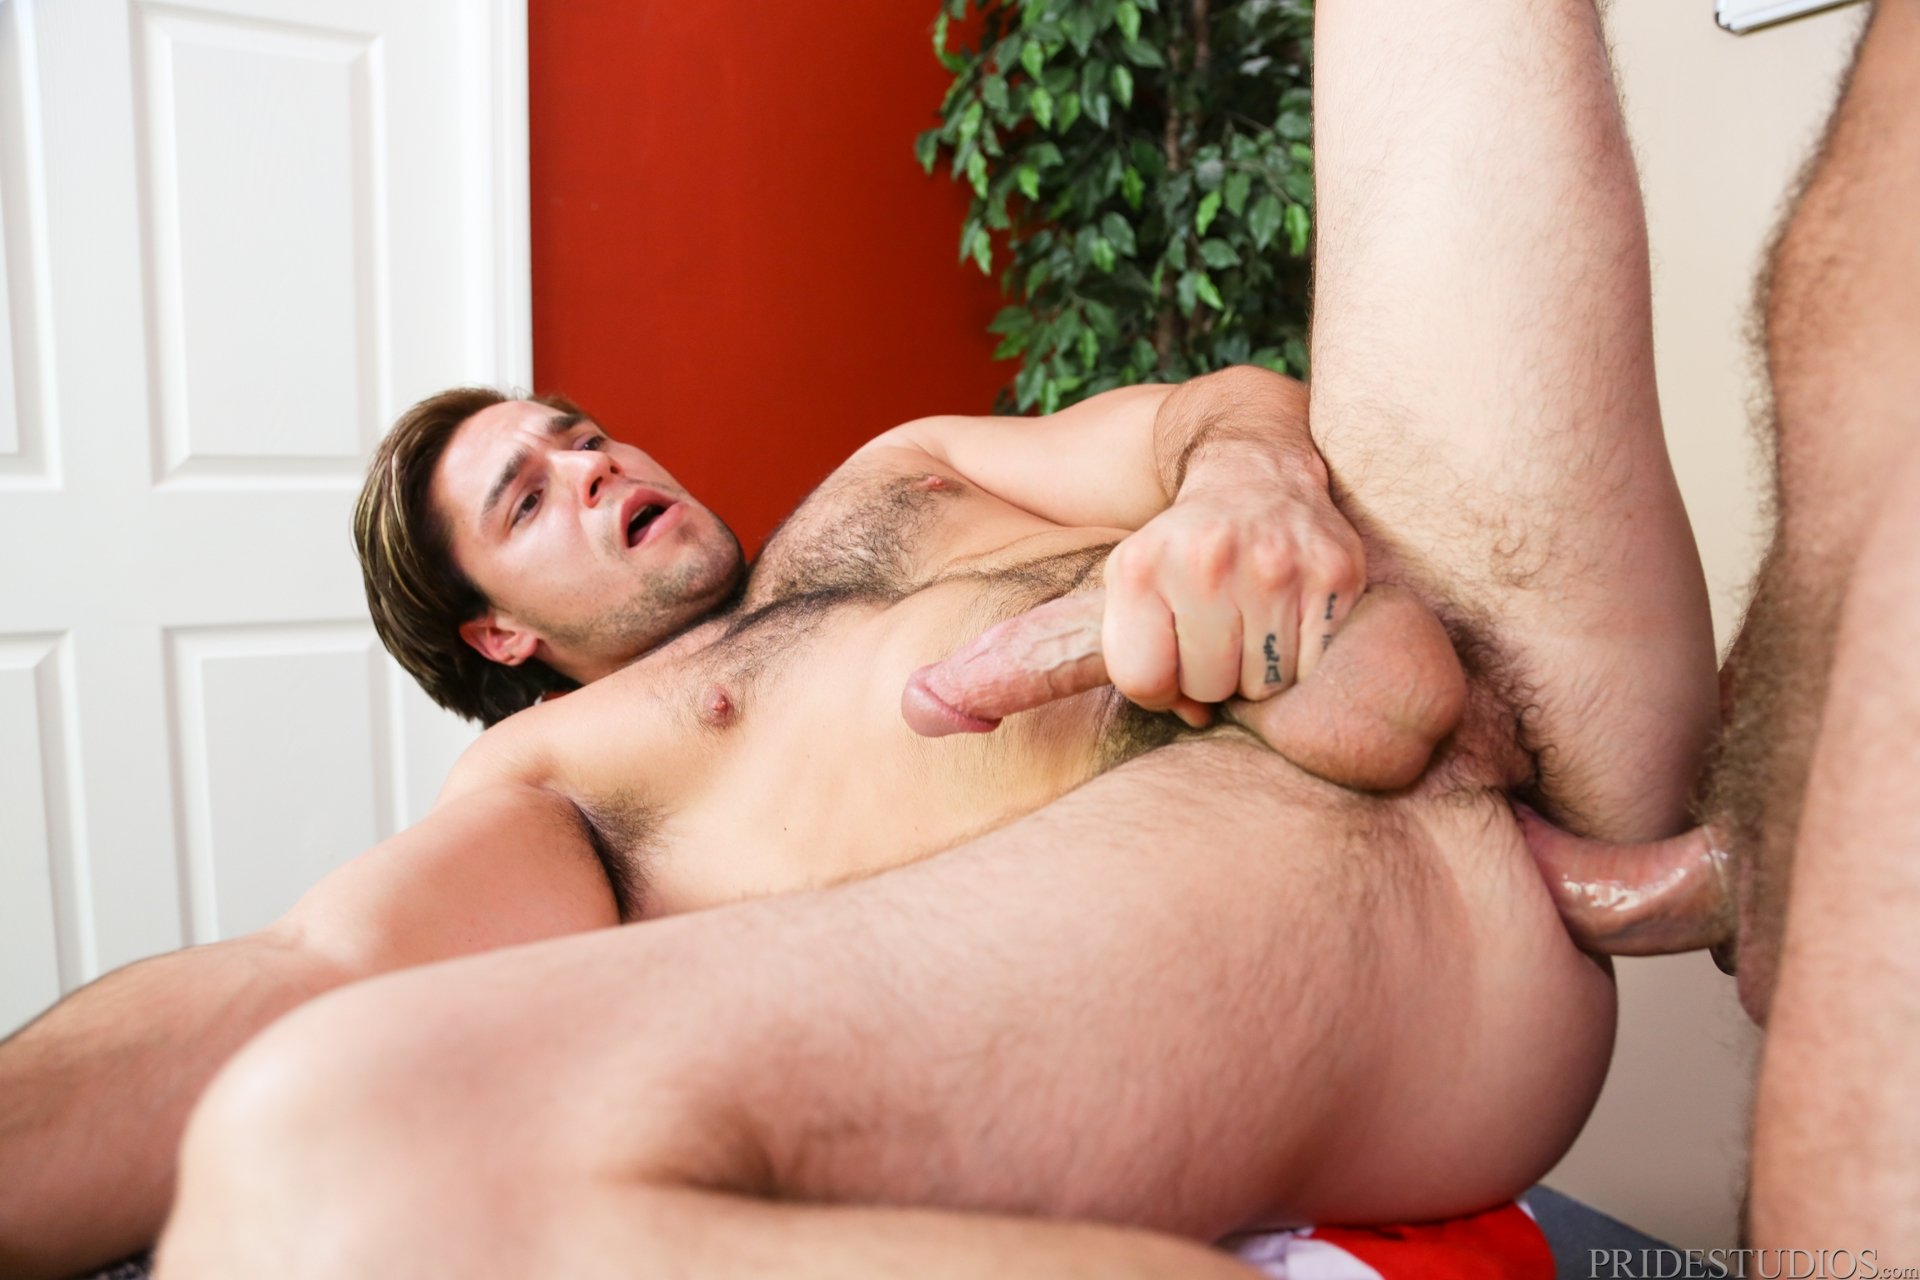 from Adriel huge dicks in gay asses